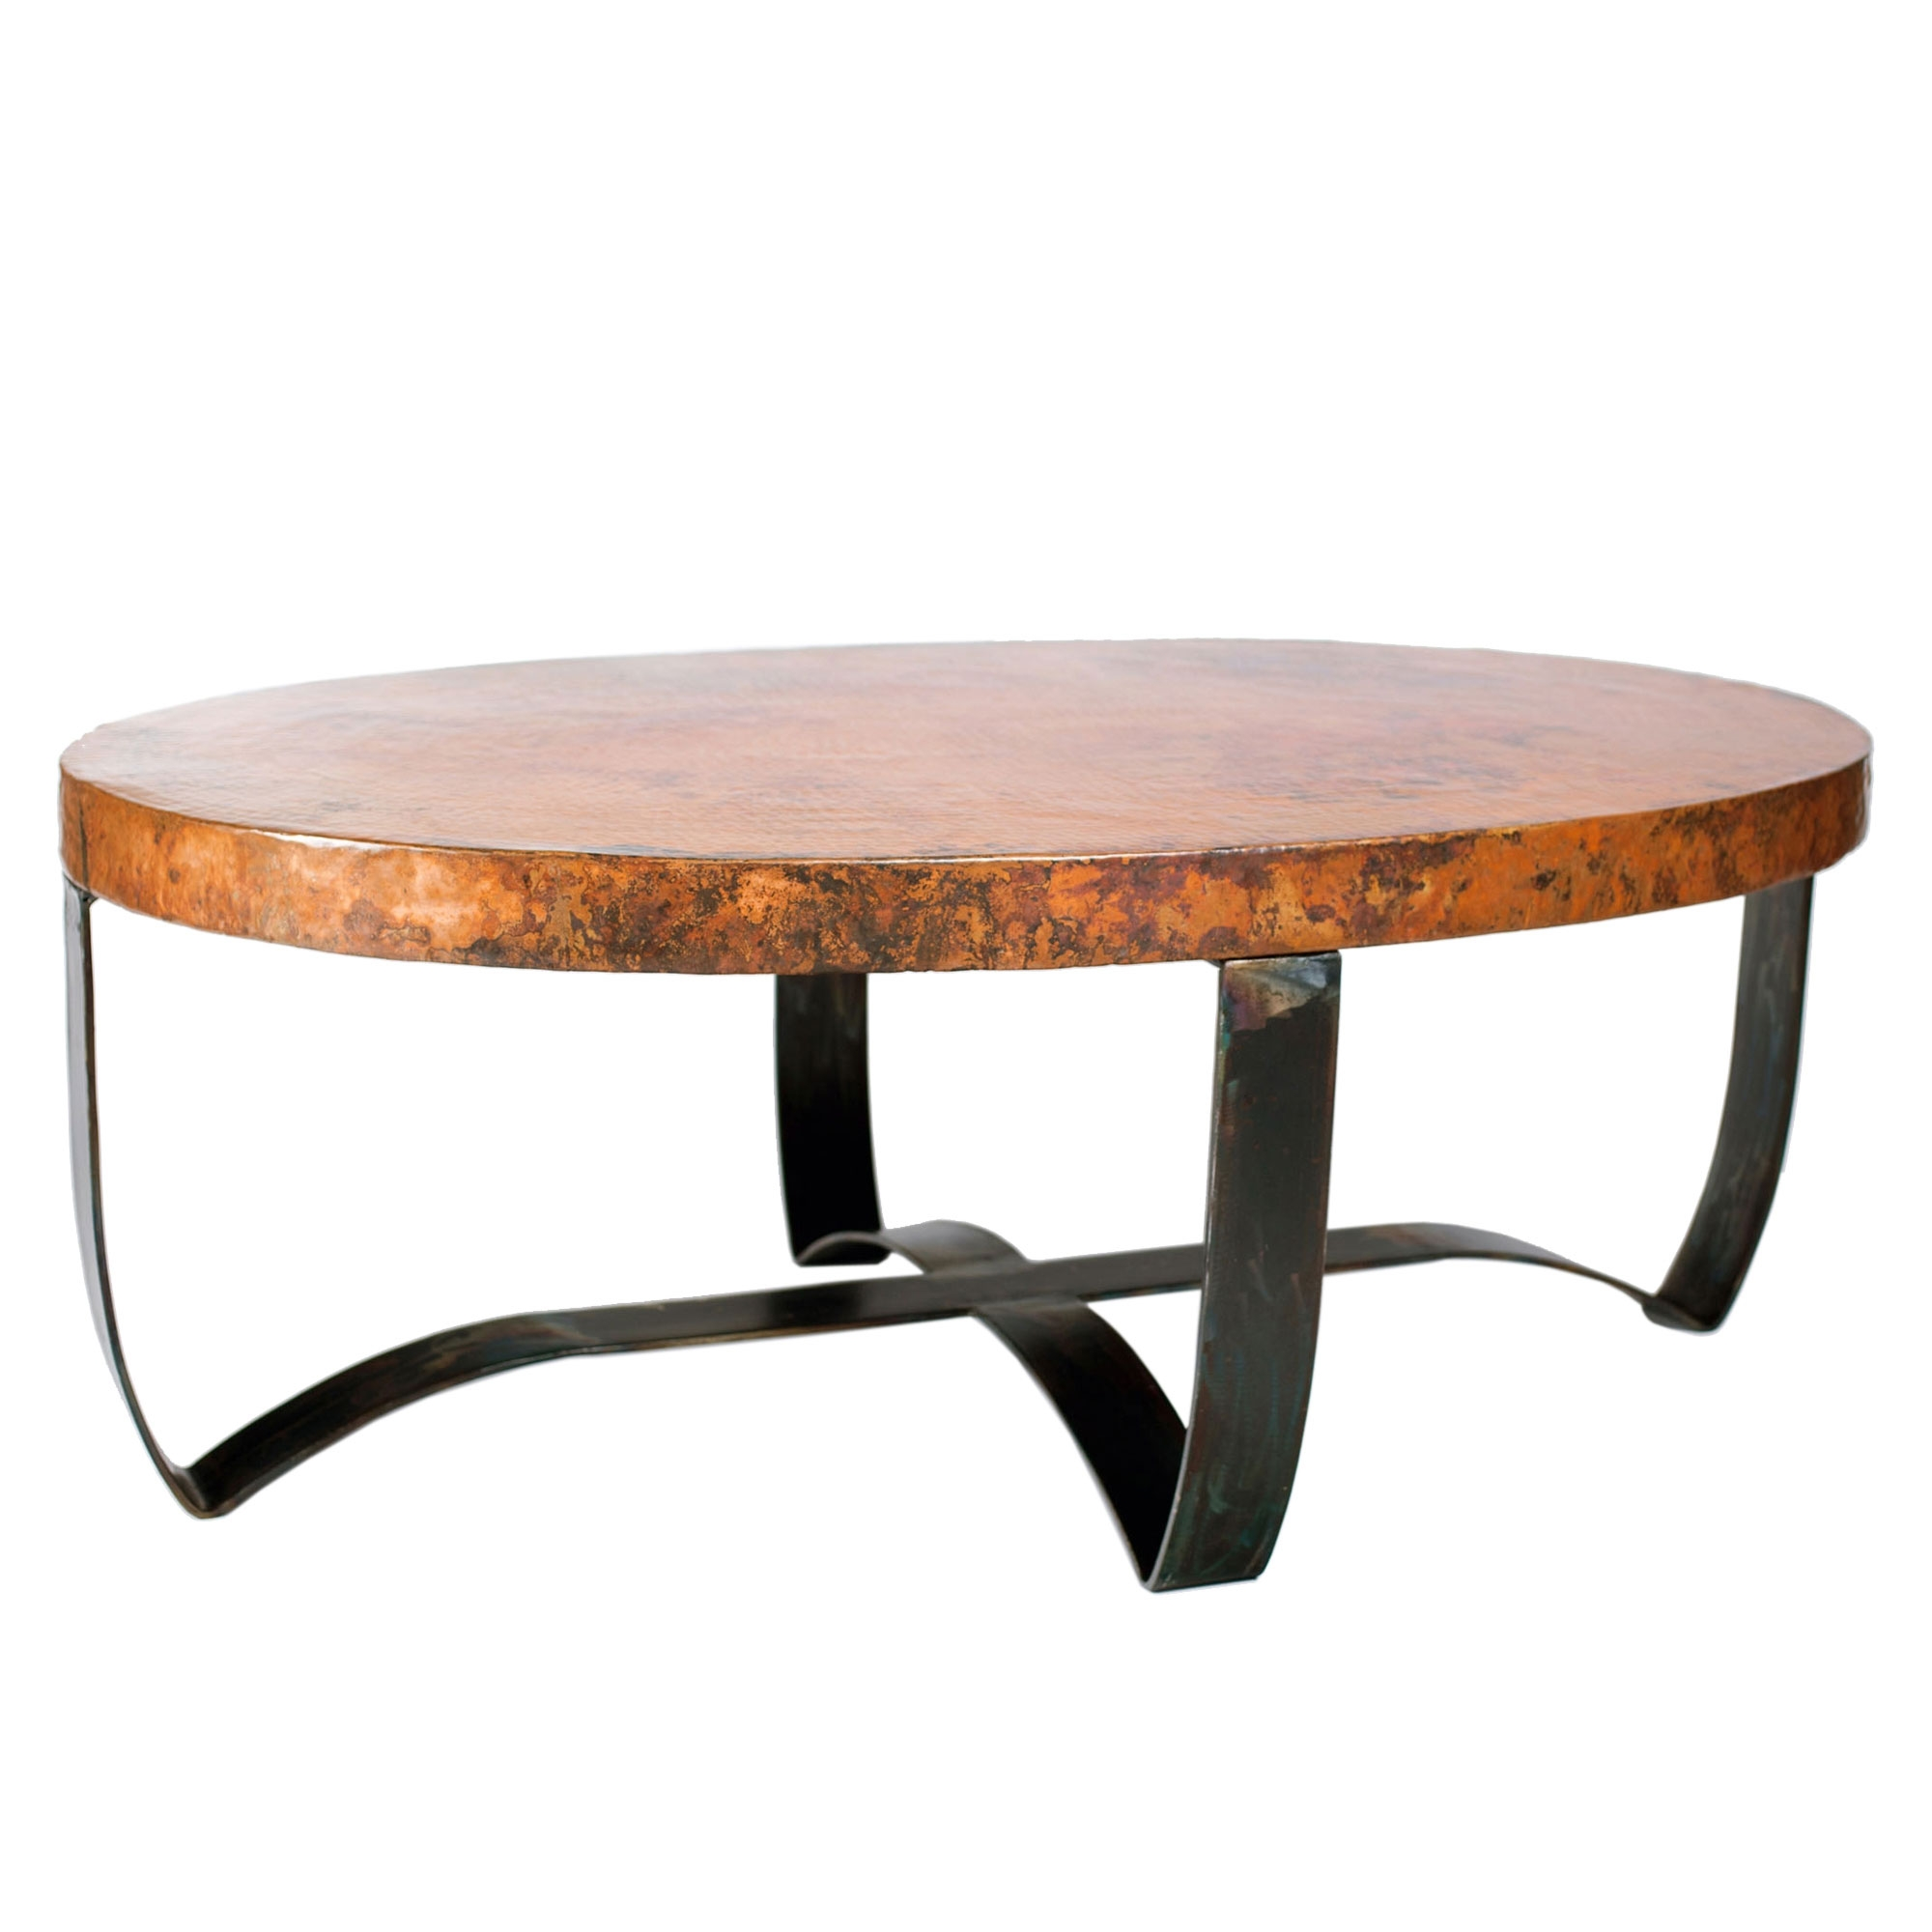 Twi bfm5 f 508a 3jpg for Oval copper coffee table